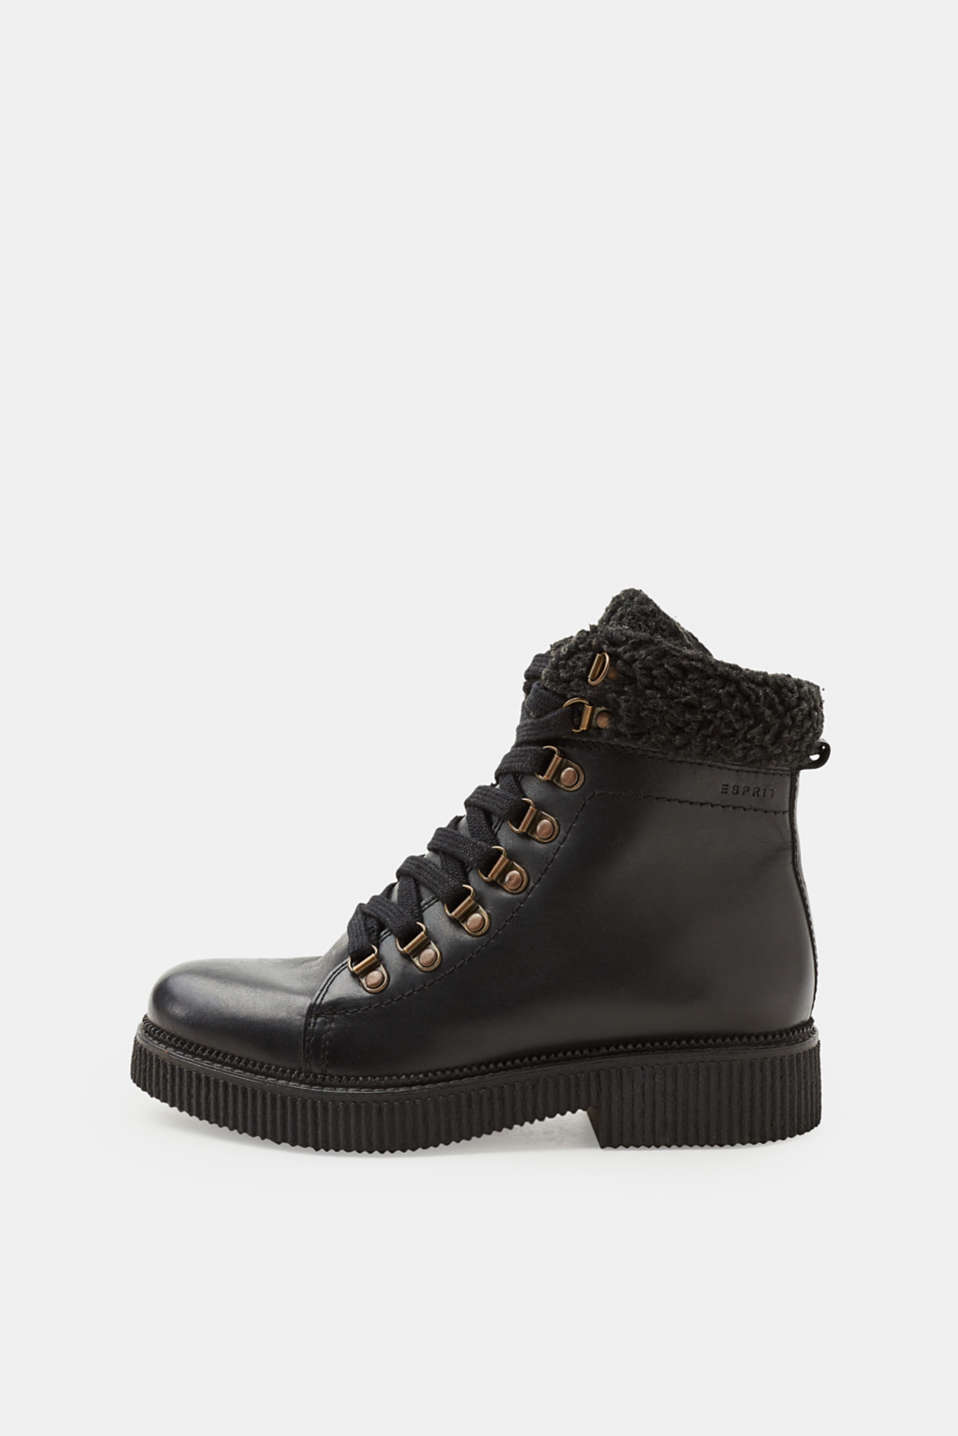 Esprit - Lace-up boots trimmed with teddy fur